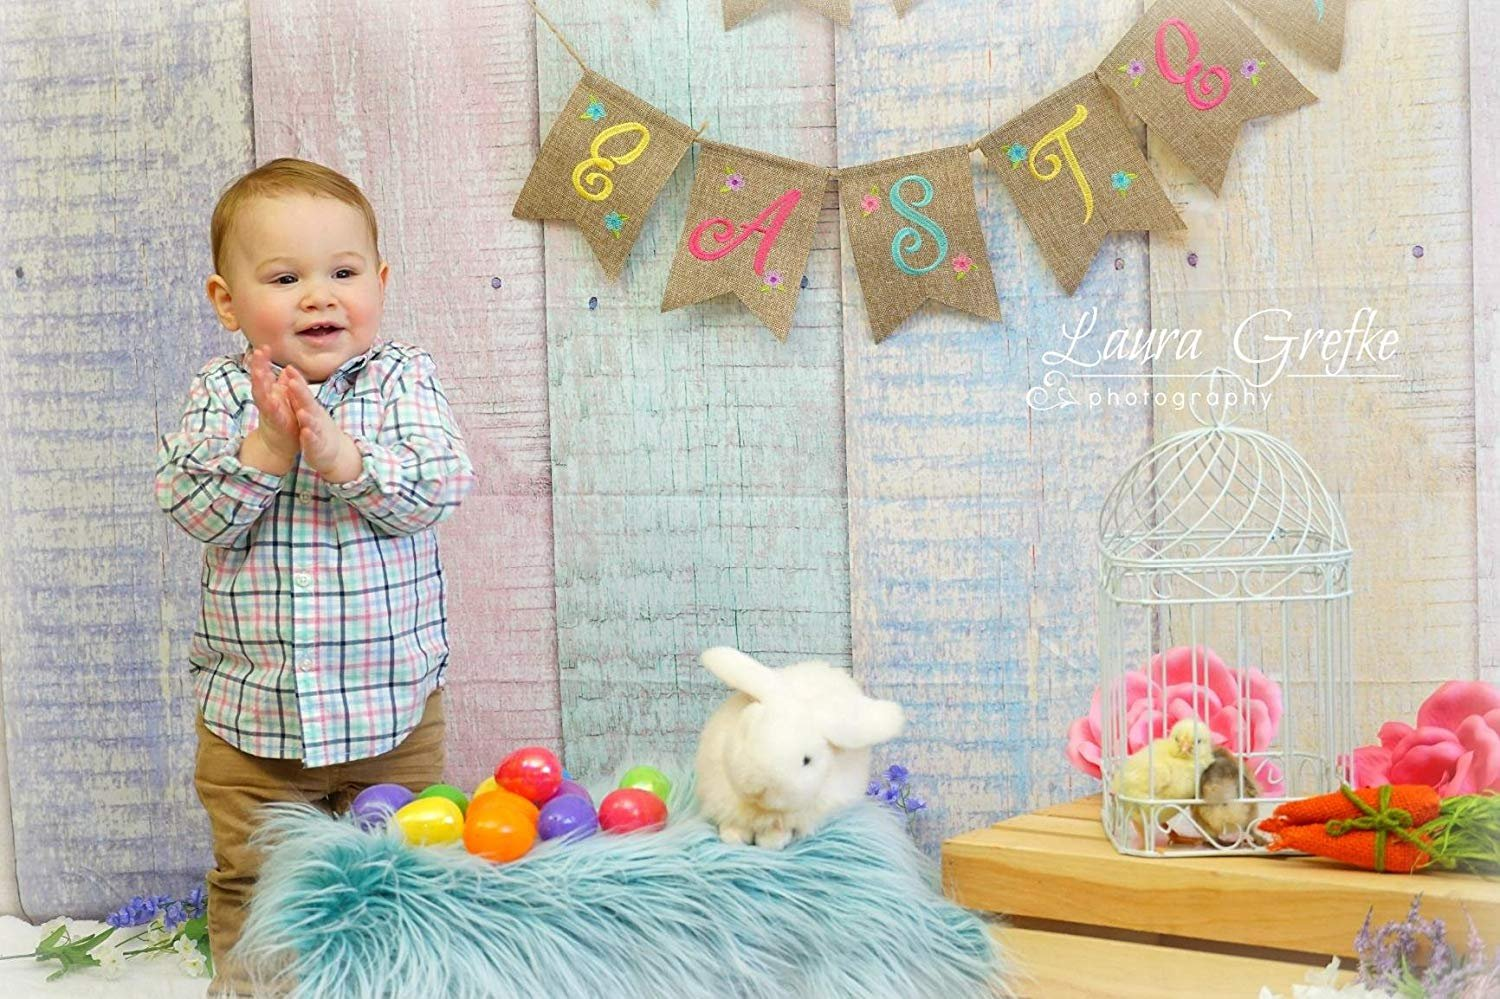 Kate 10x10ft Wood Fence Backgrounds for Photographer Easter Photography Backdrops Colorful Texture Backdrop Photo Booth by Kate (Image #3)